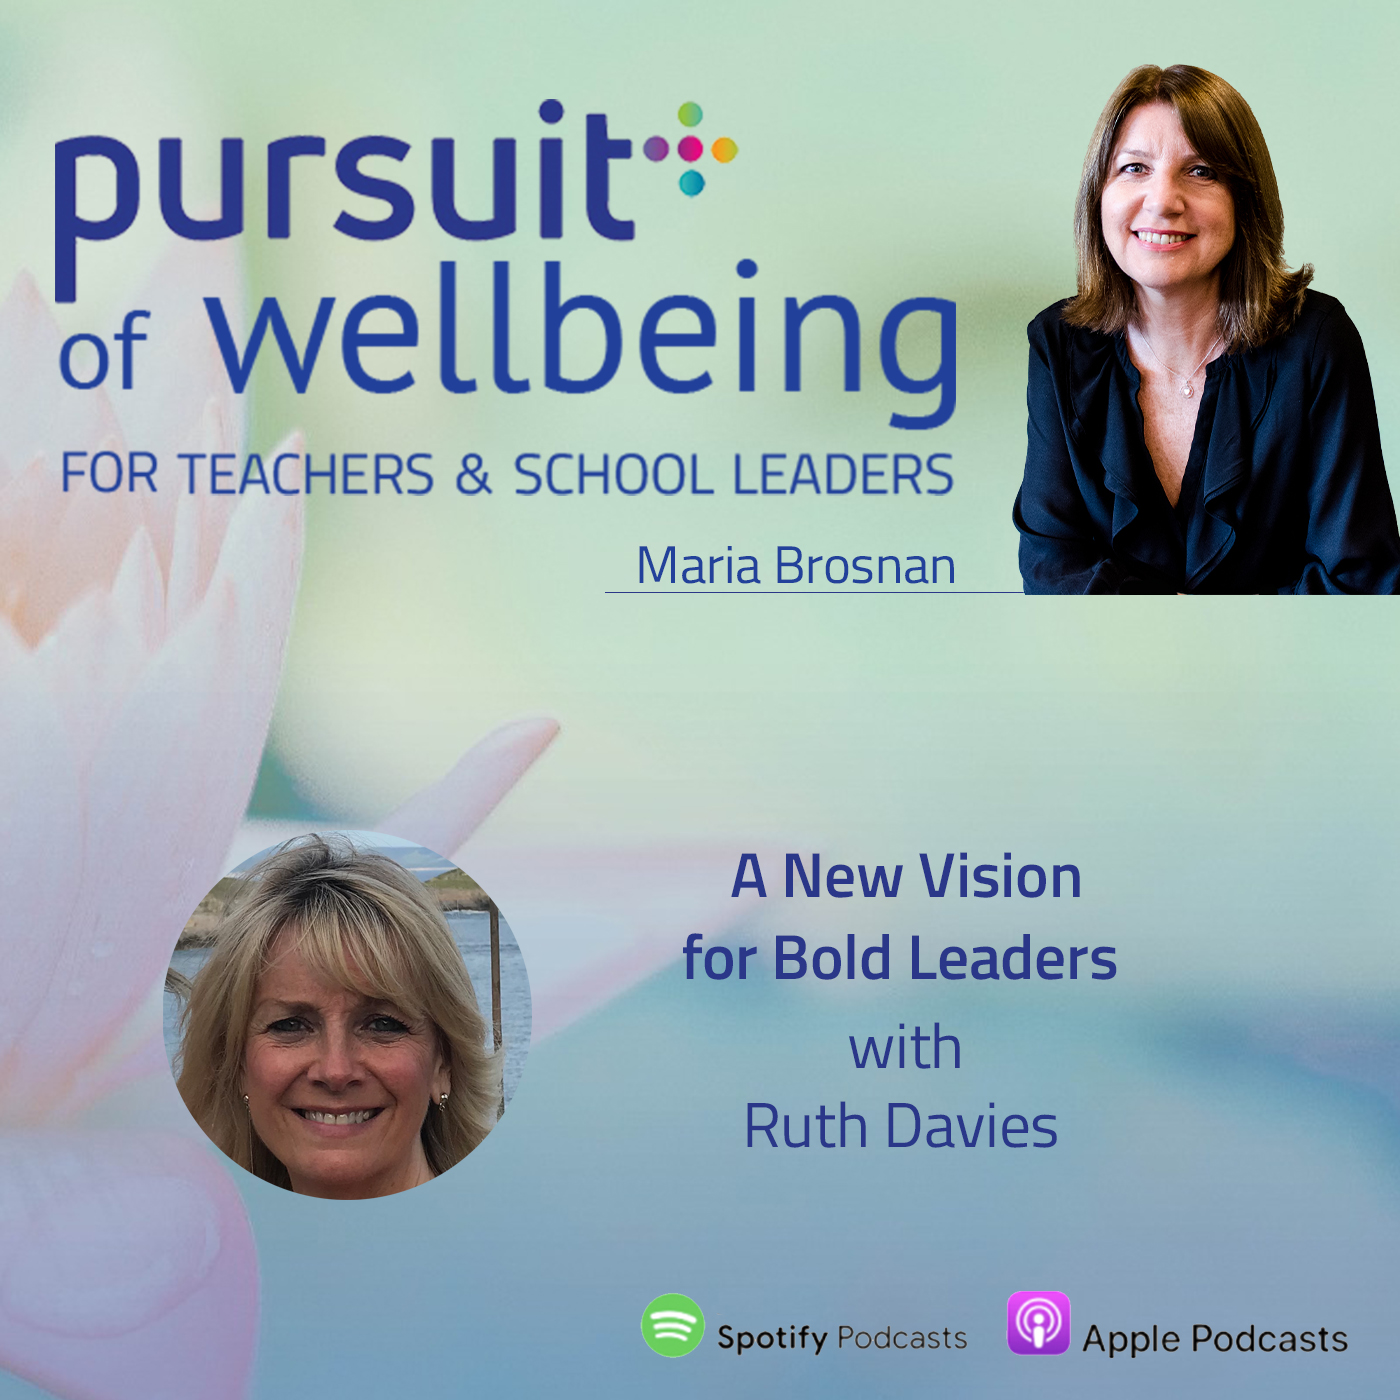 A New Vision for Bold Leaders with Ruth Davies